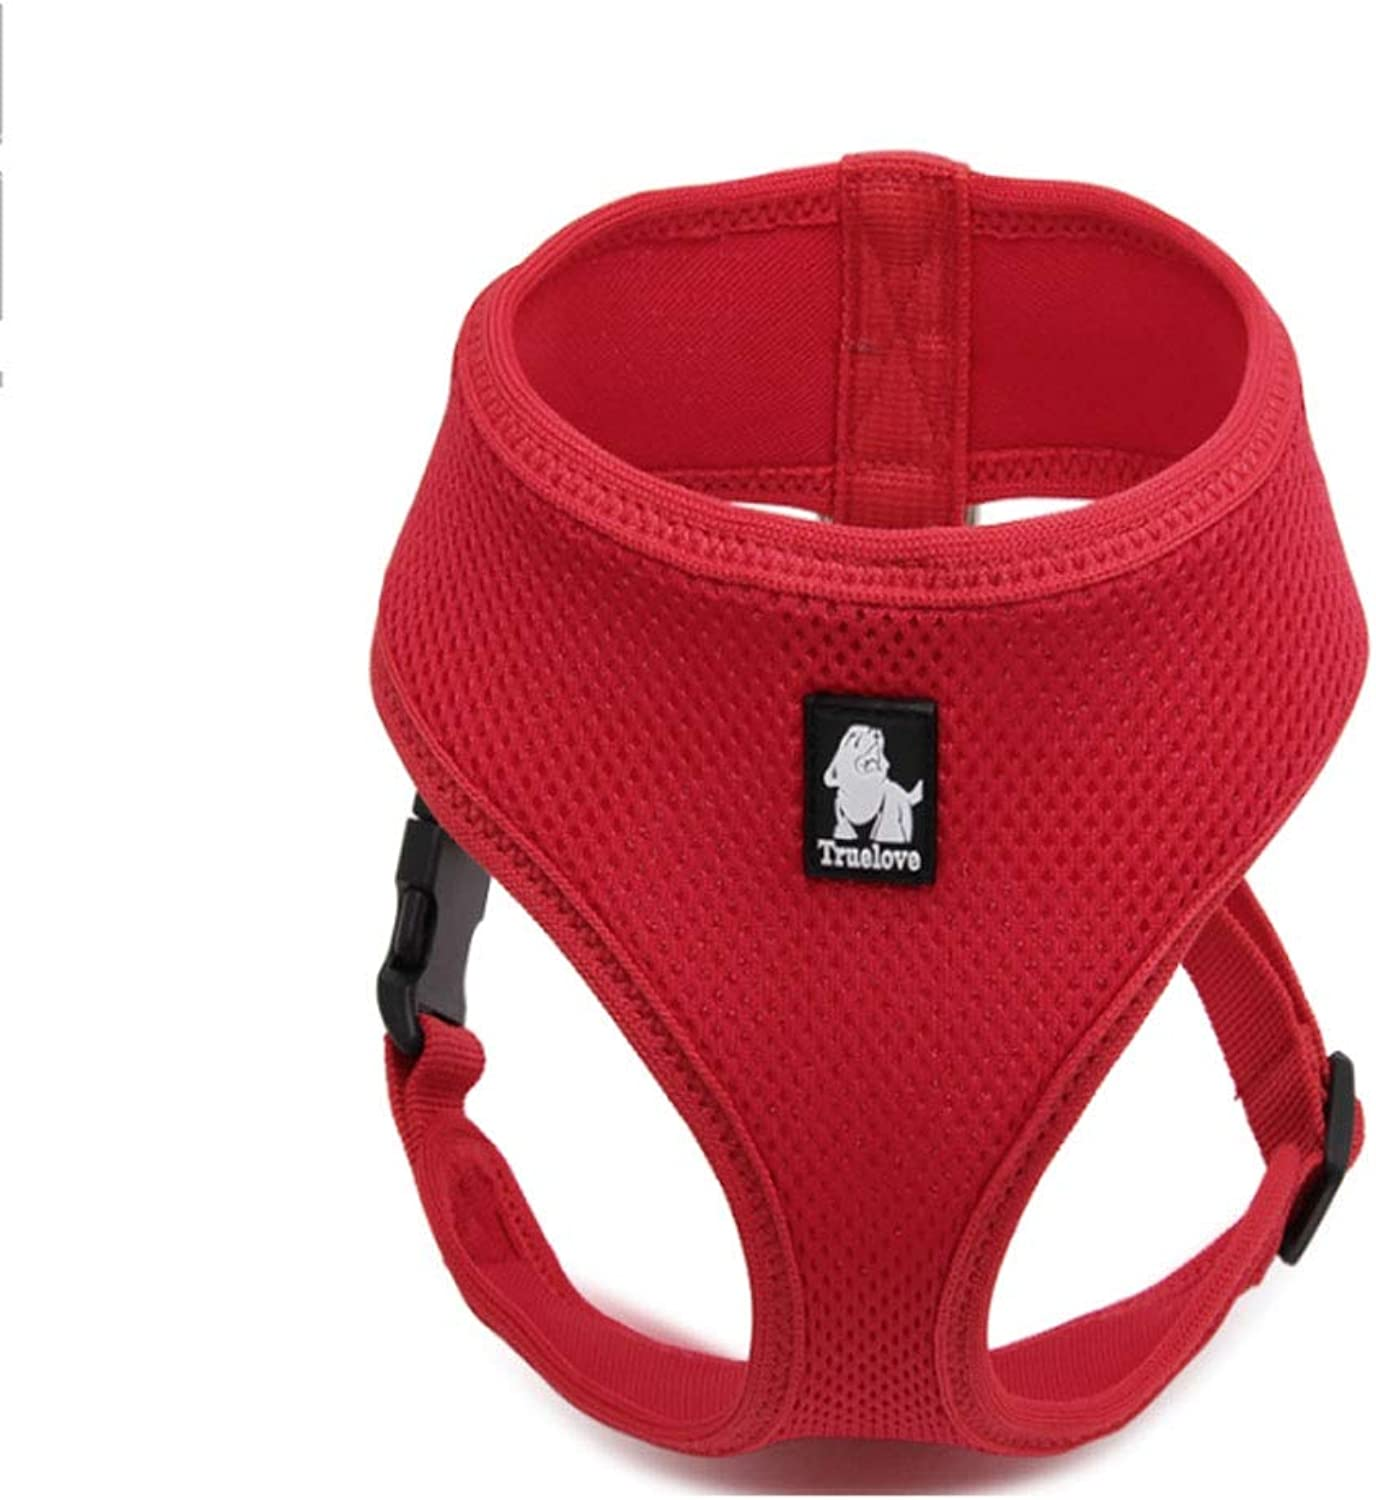 Pet Vest Harness Home Small Medium Dog Chest Strap Outdoor Teddy Traction Rope Supplies (8 colors Optional) (color   Red, Size   XL)